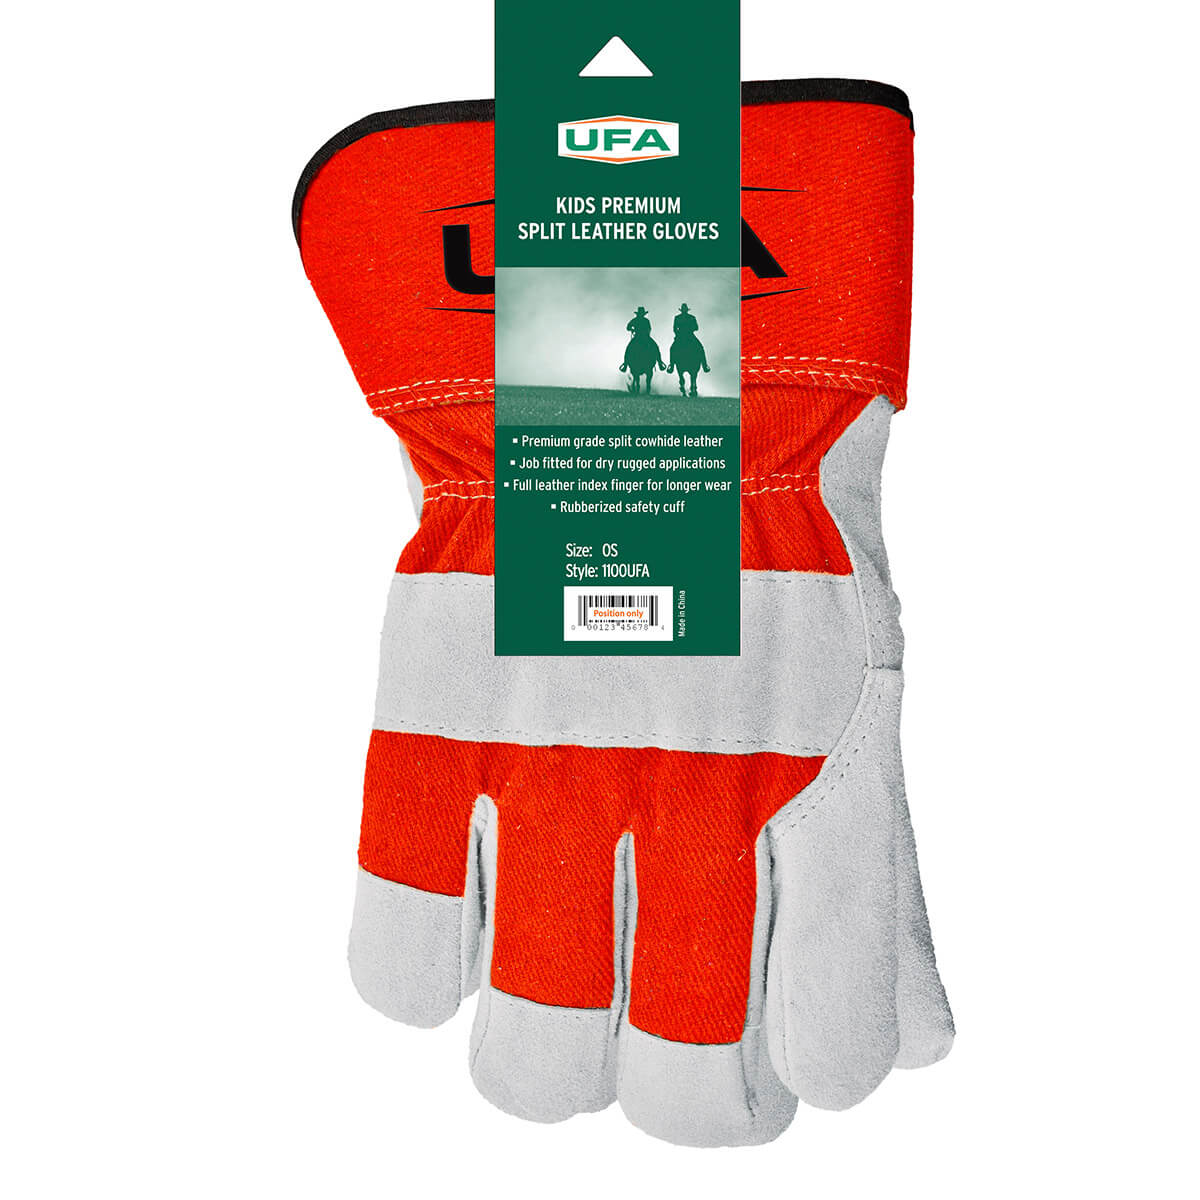 UFA Children's Premium Split Leather Gloves